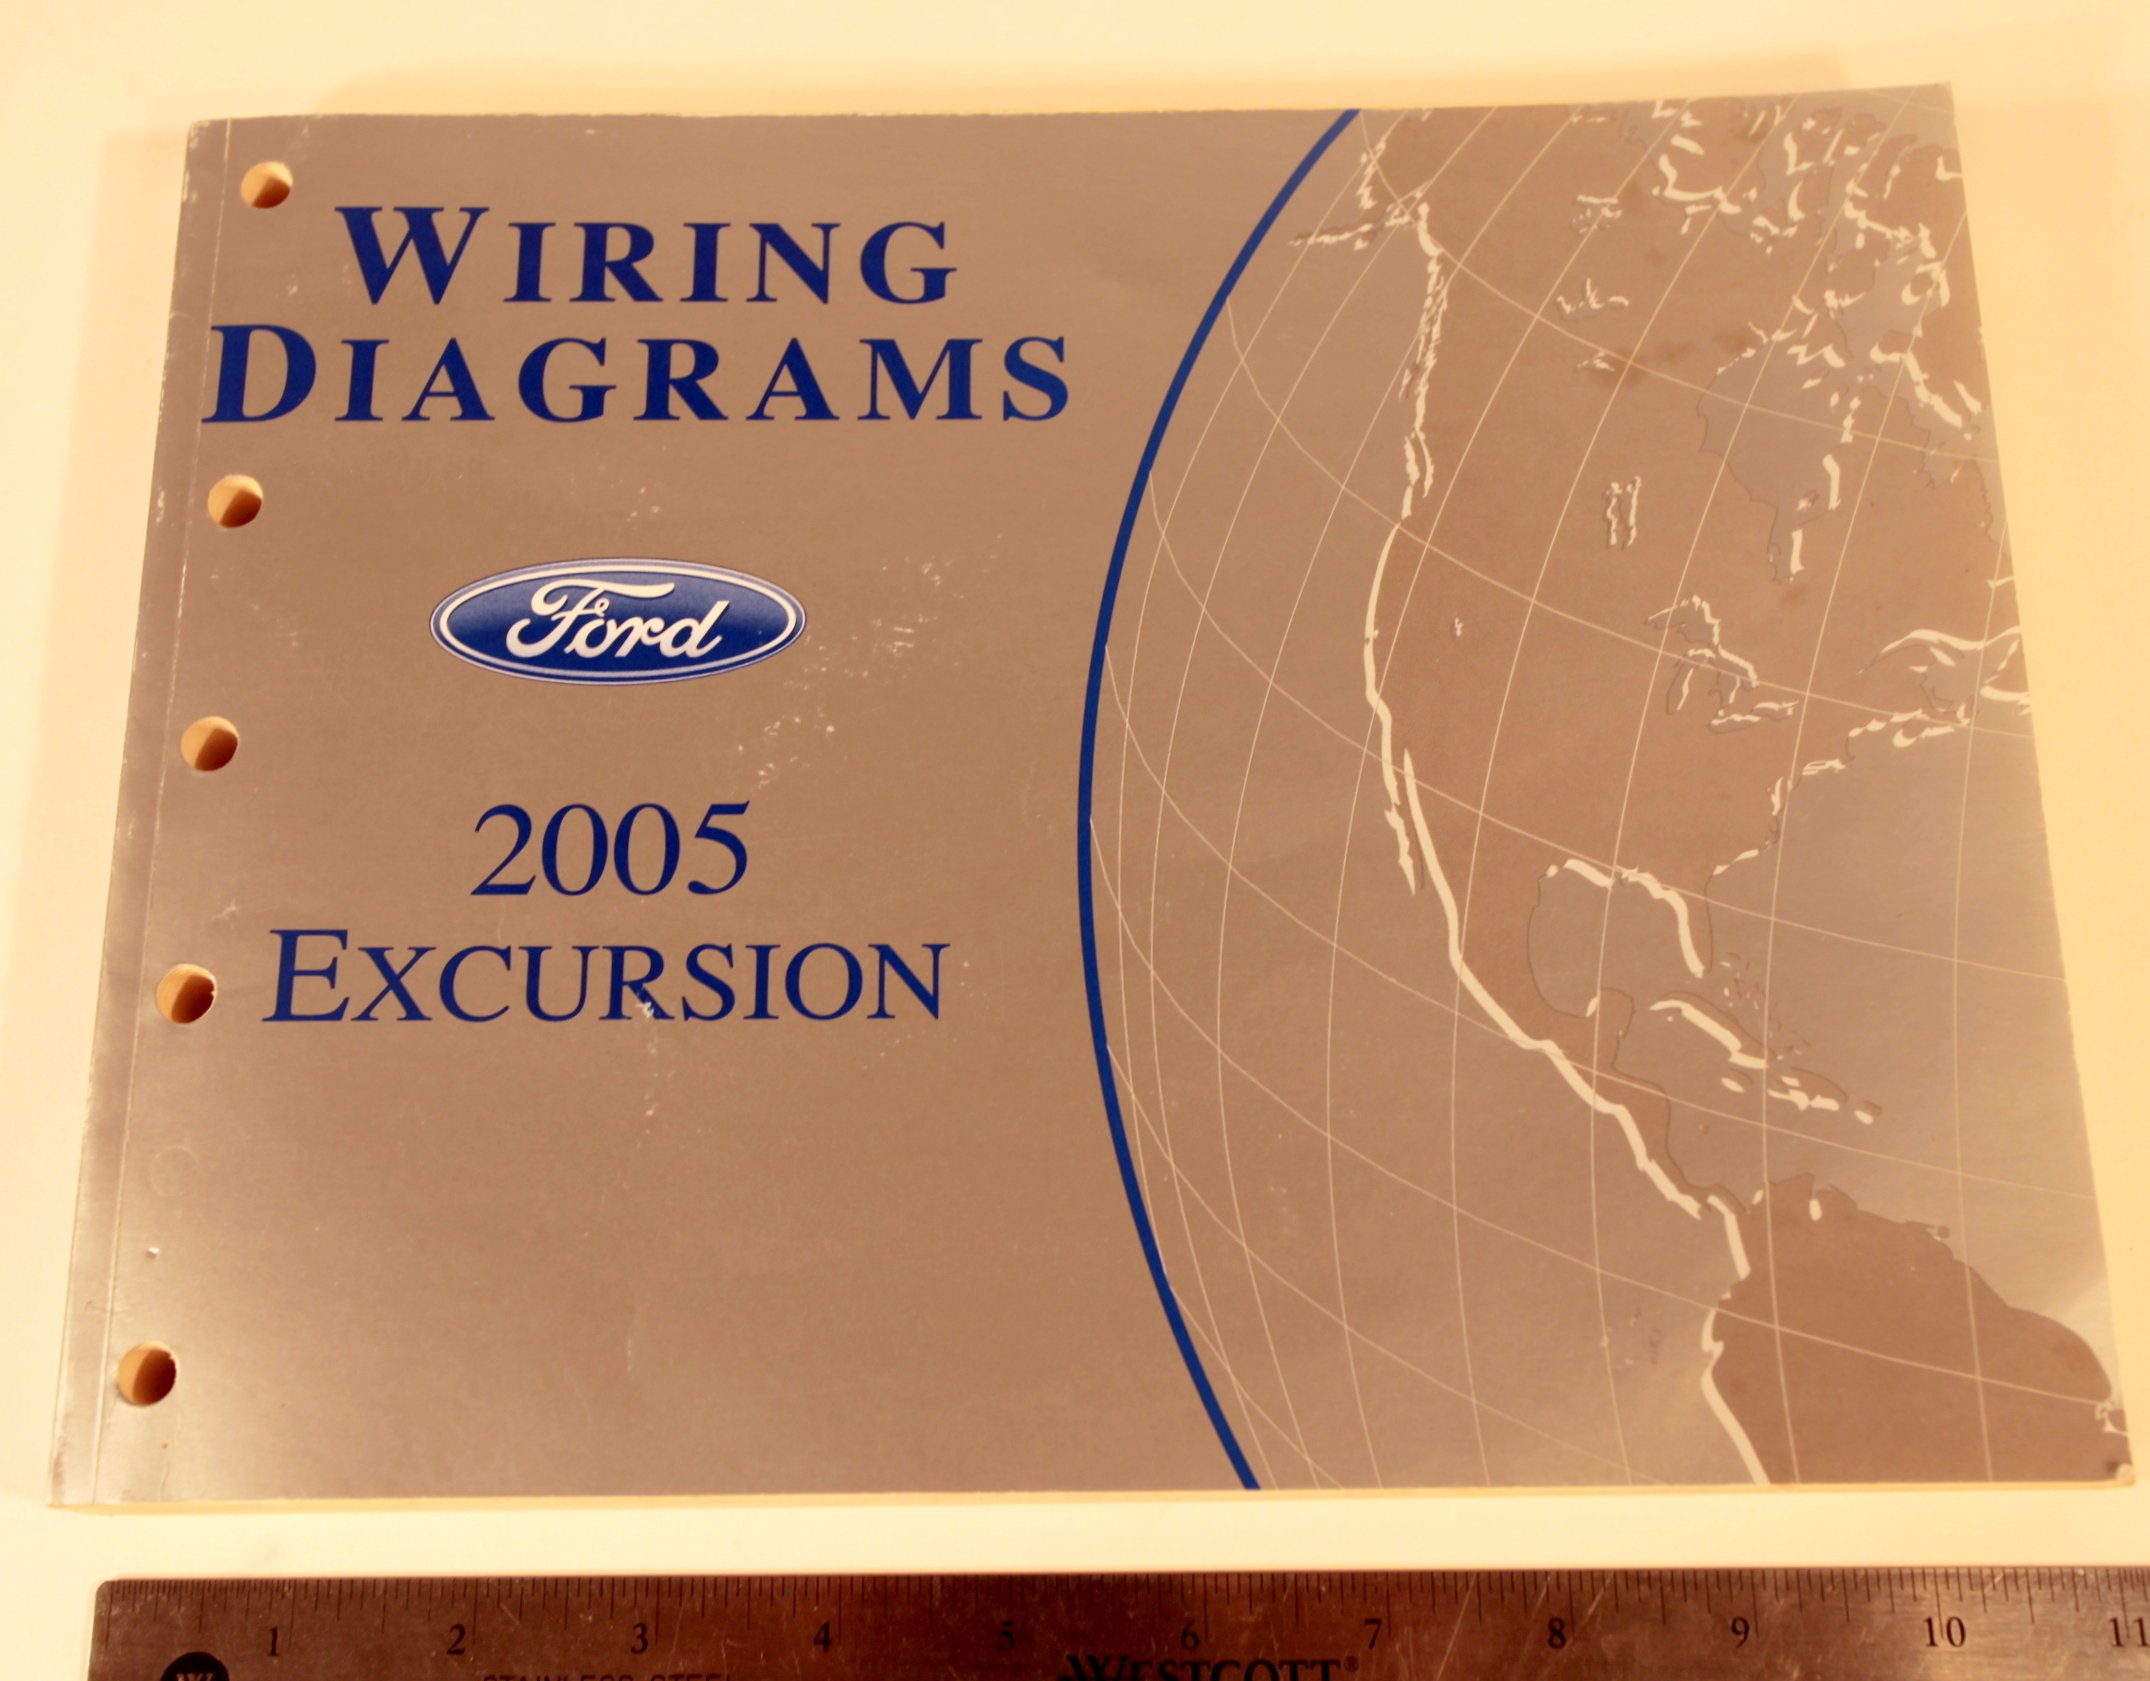 2005 ford excursion wiring diagrams ford motor company 2003 ford excursion wiring diagram ford excursion wiring diagrams #14